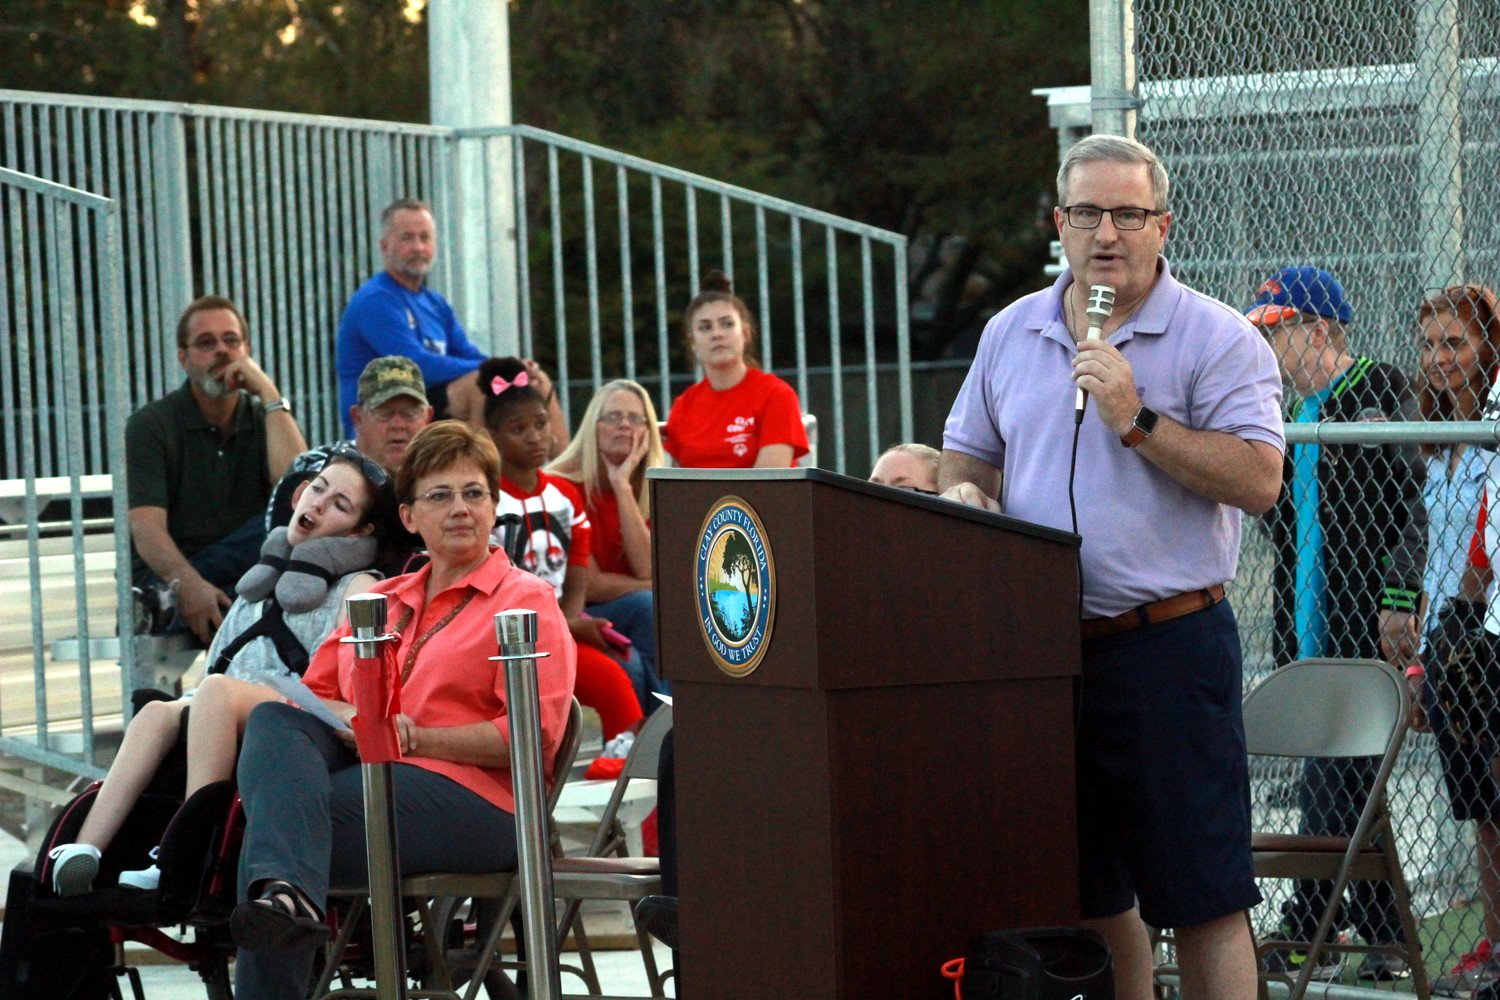 Fleming Island resident Brian McElyea talks about how the new disability-friendly baseball park inside Moody Avenue Park is a dream-come-true for his daughter and family. The ballpark was dedicated Nov. 7.